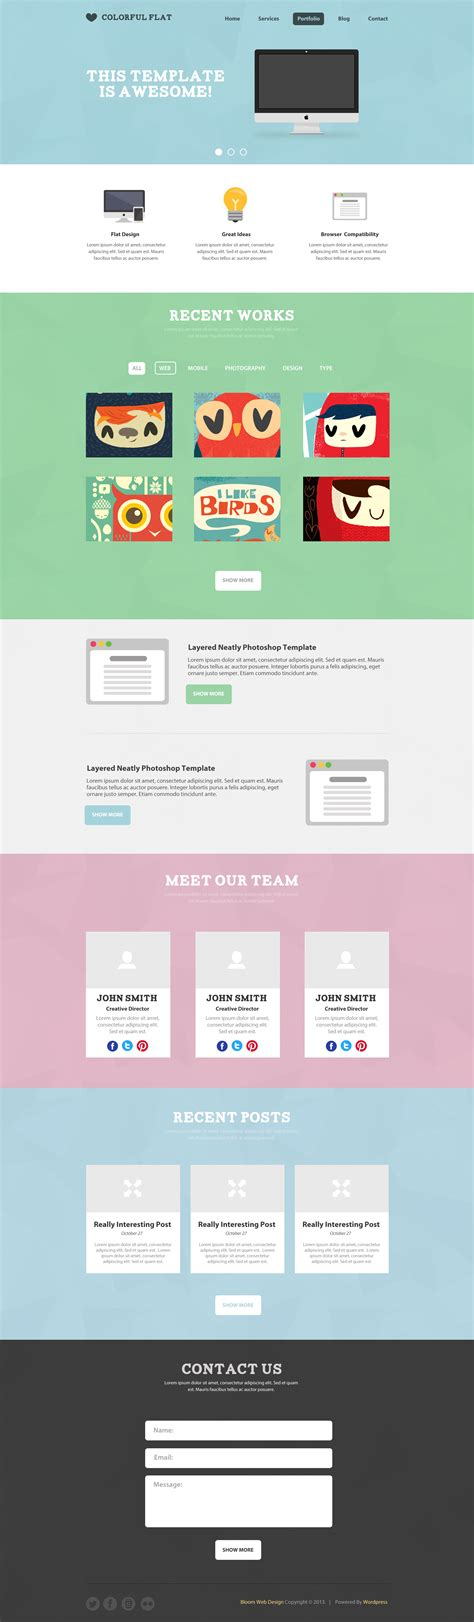 Blog One Page Mania Single Page Website Template